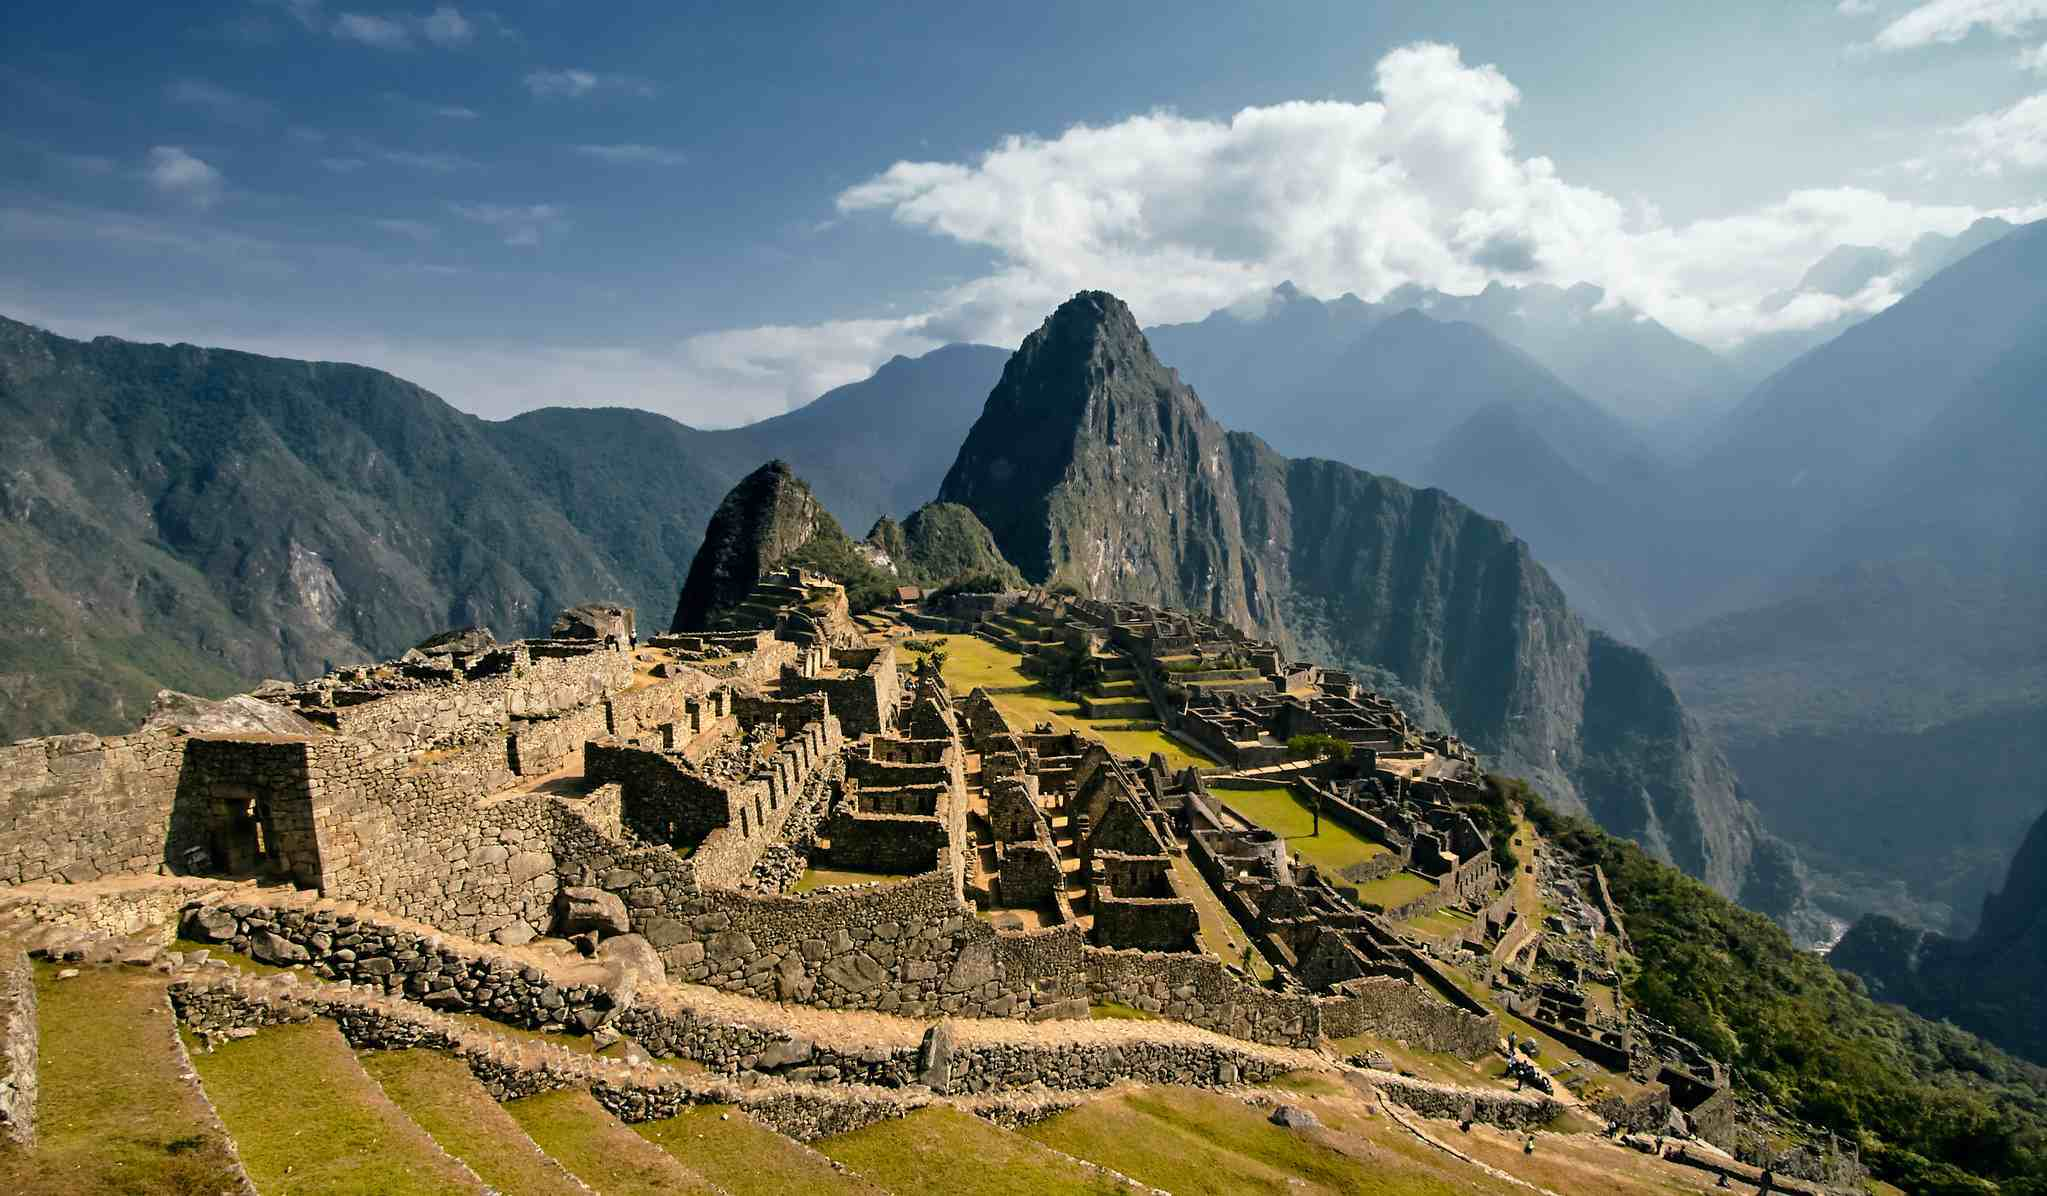 16 ancient cities and settlements that were mysteriously abandoned 14